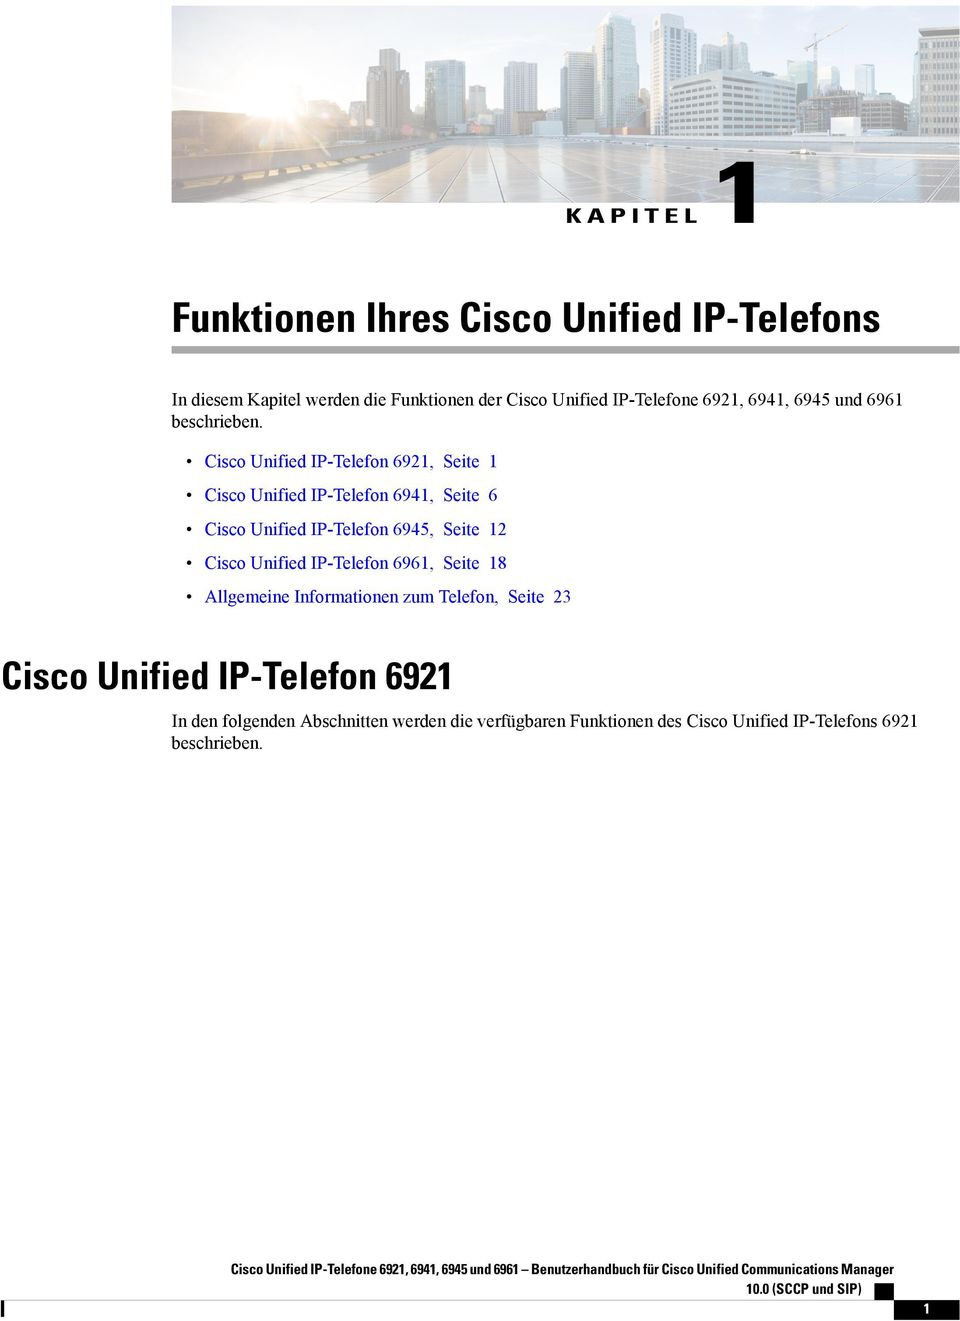 Cisco Unified IP-Telefon 6921, Seite 1 Cisco Unified IP-Telefon 6941, Seite 6 Cisco Unified IP-Telefon 6945, Seite 12 Cisco Unified IP-Telefon 6961, Seite 18